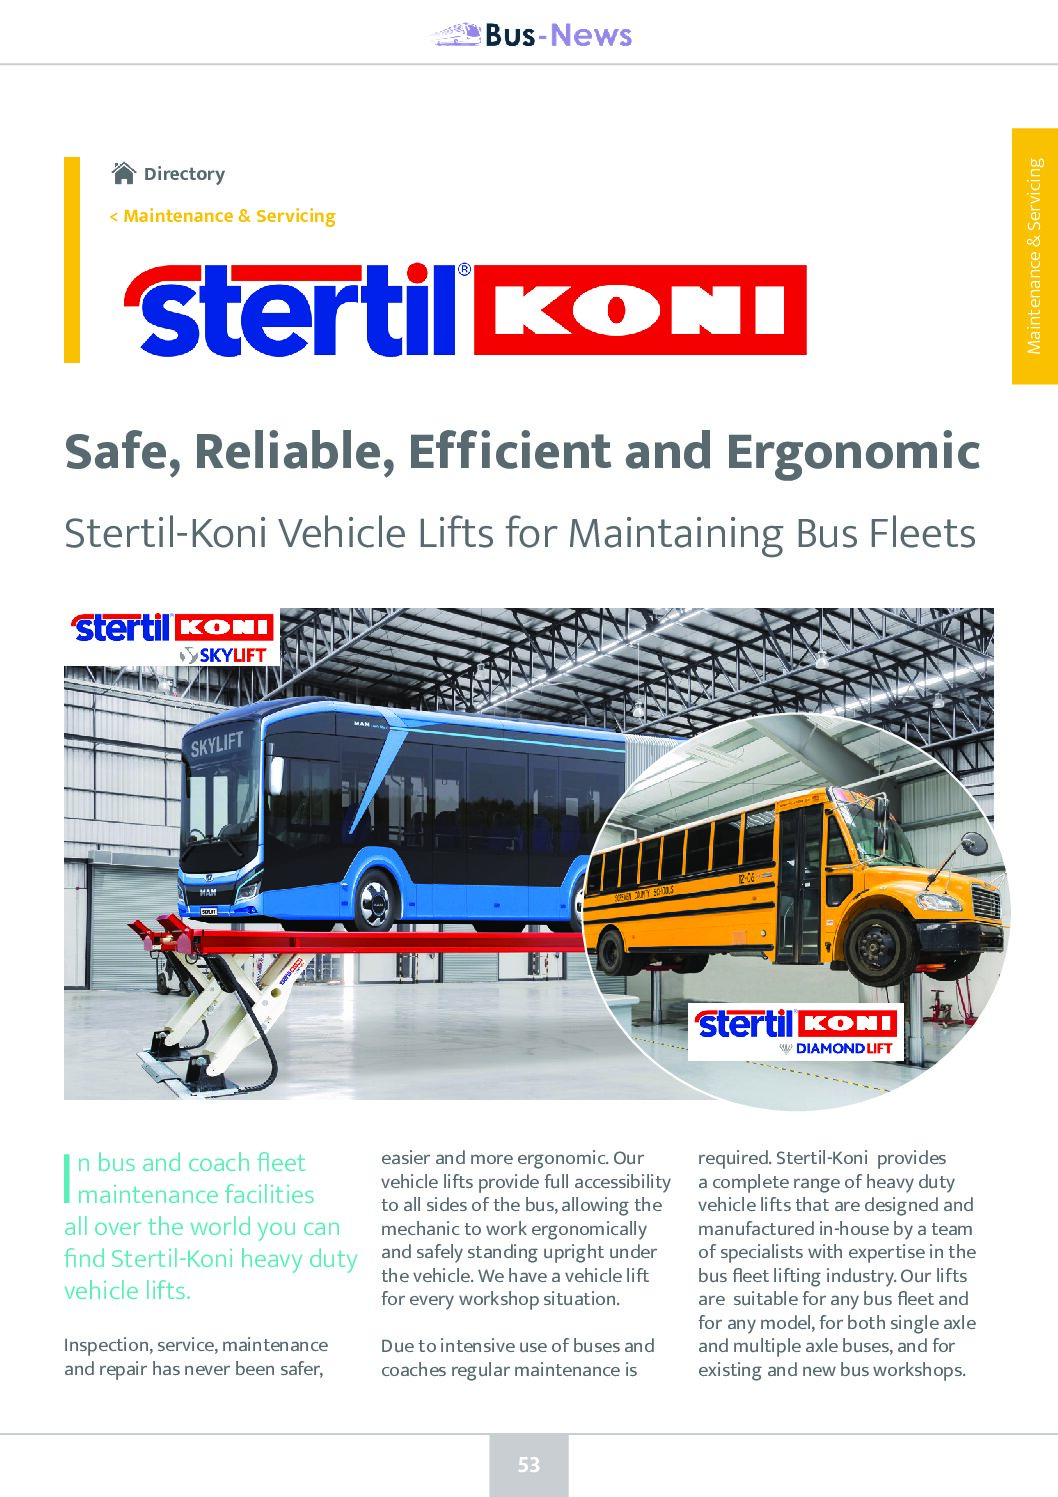 Stertil-Koni: Vehicle Lifts for Maintaining Bus Fleets